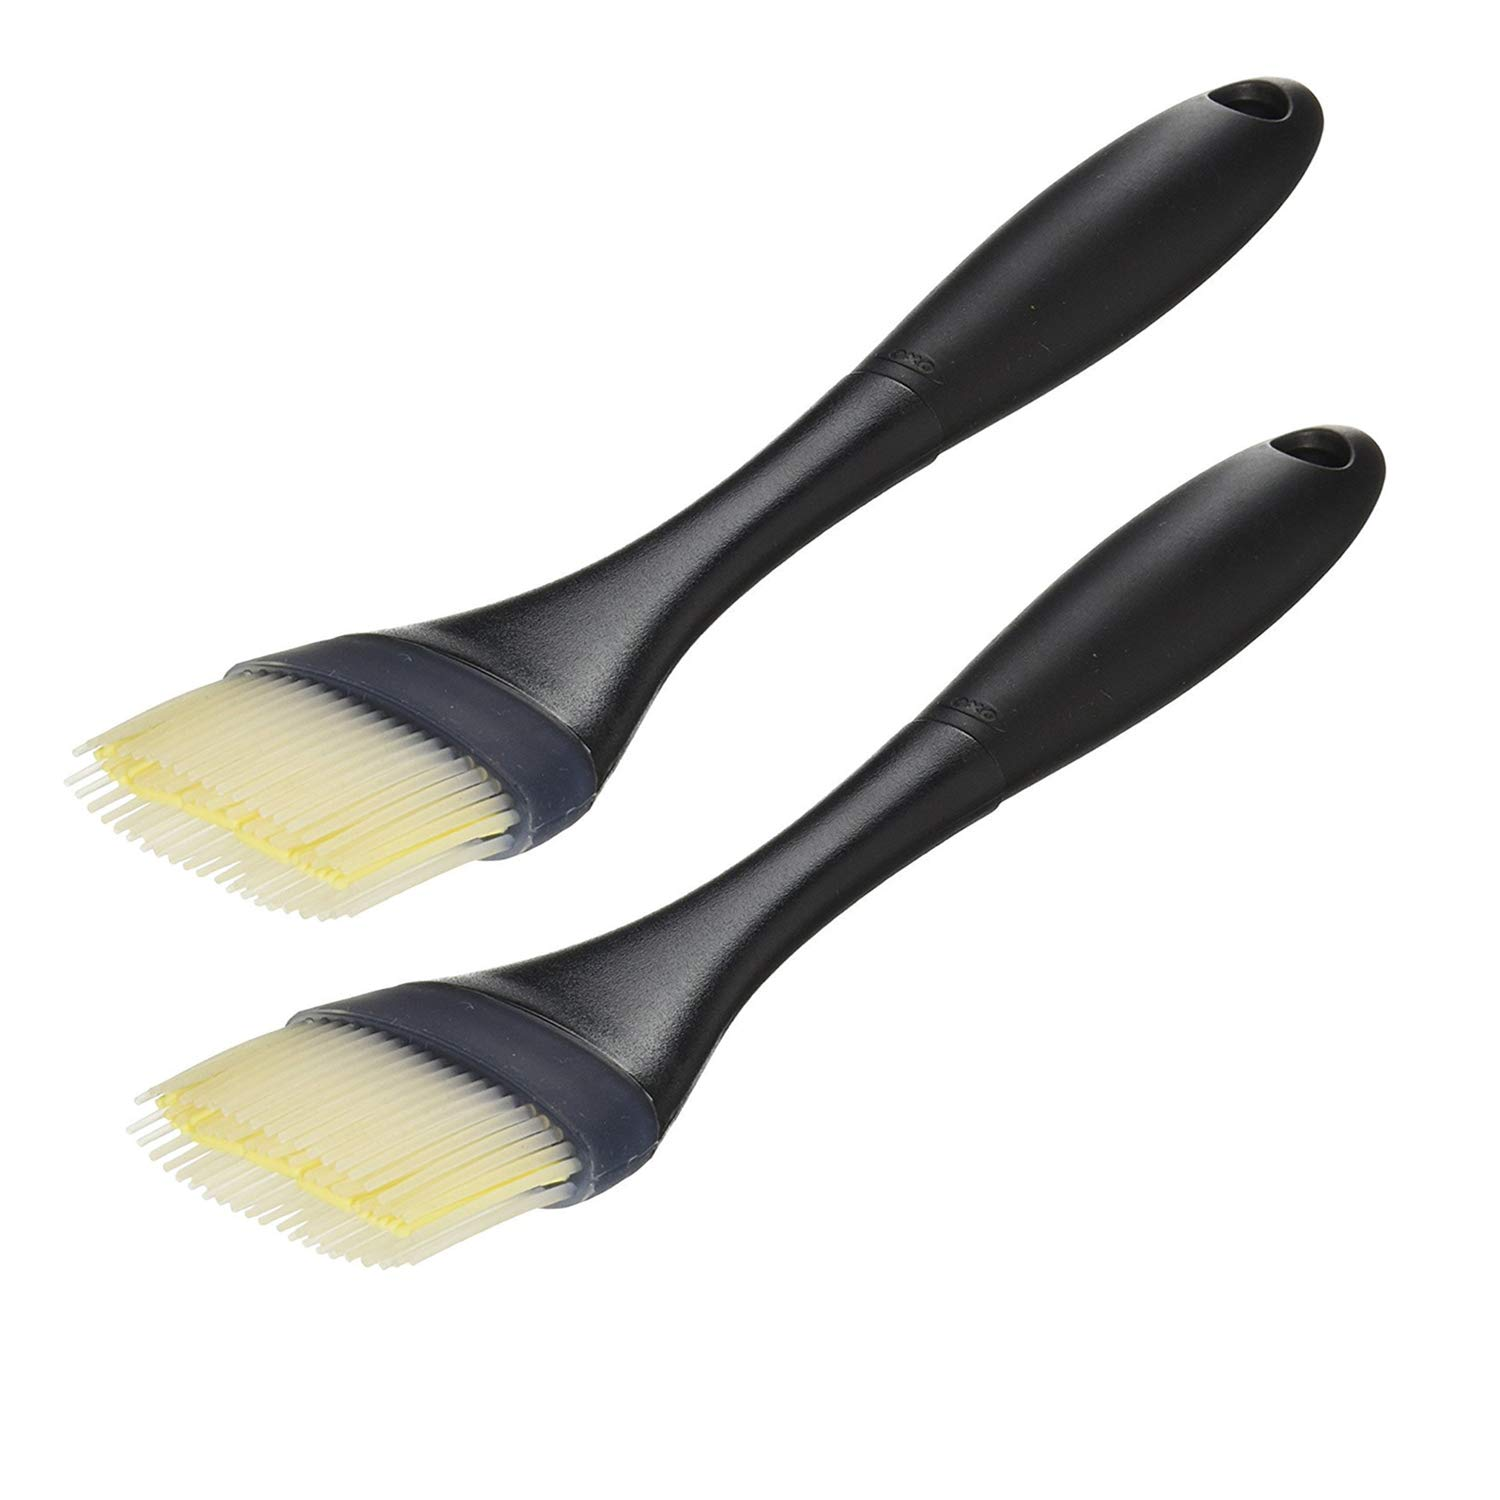 OXO Good Grips Silicone Basting & Pastry Brush - Large (2 Pack) by OXO